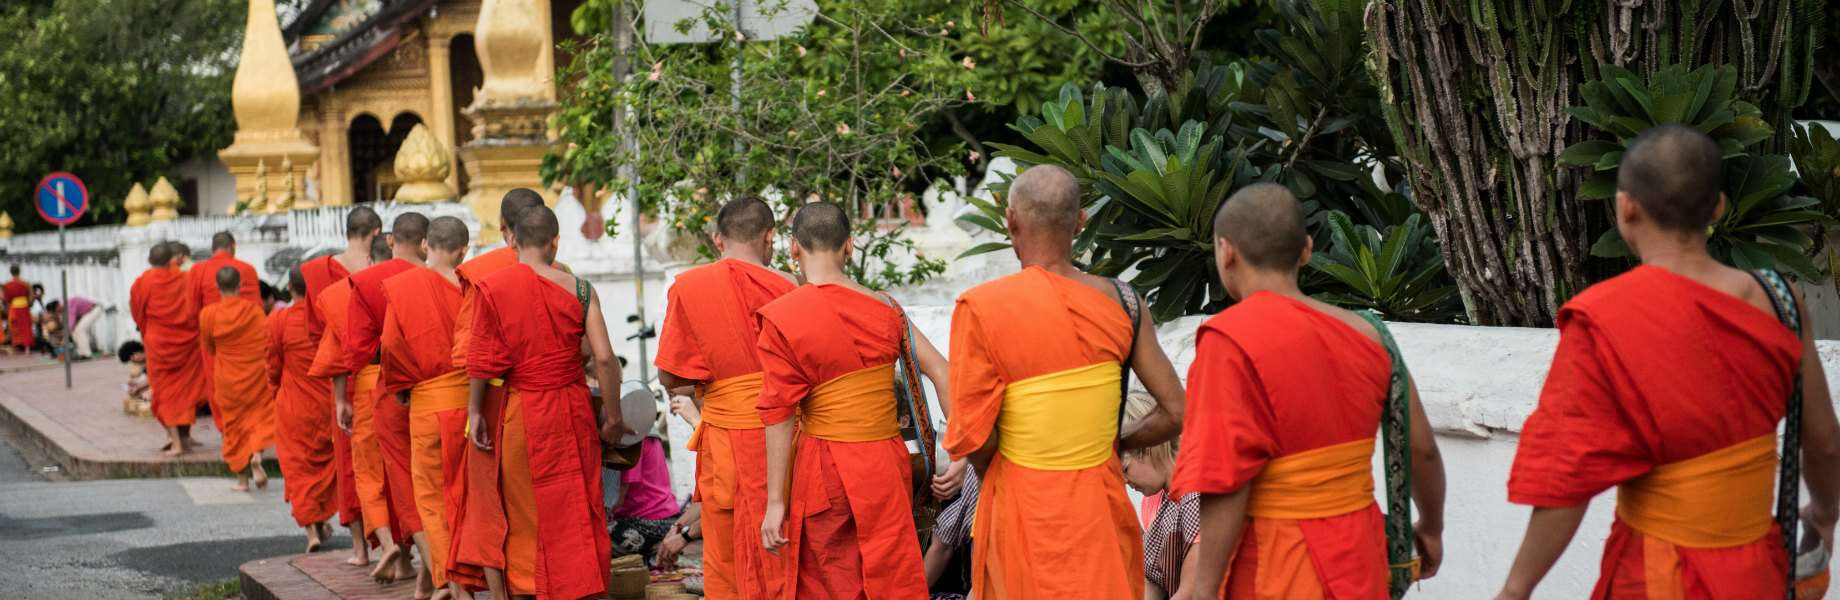 Monks - Laos In Style